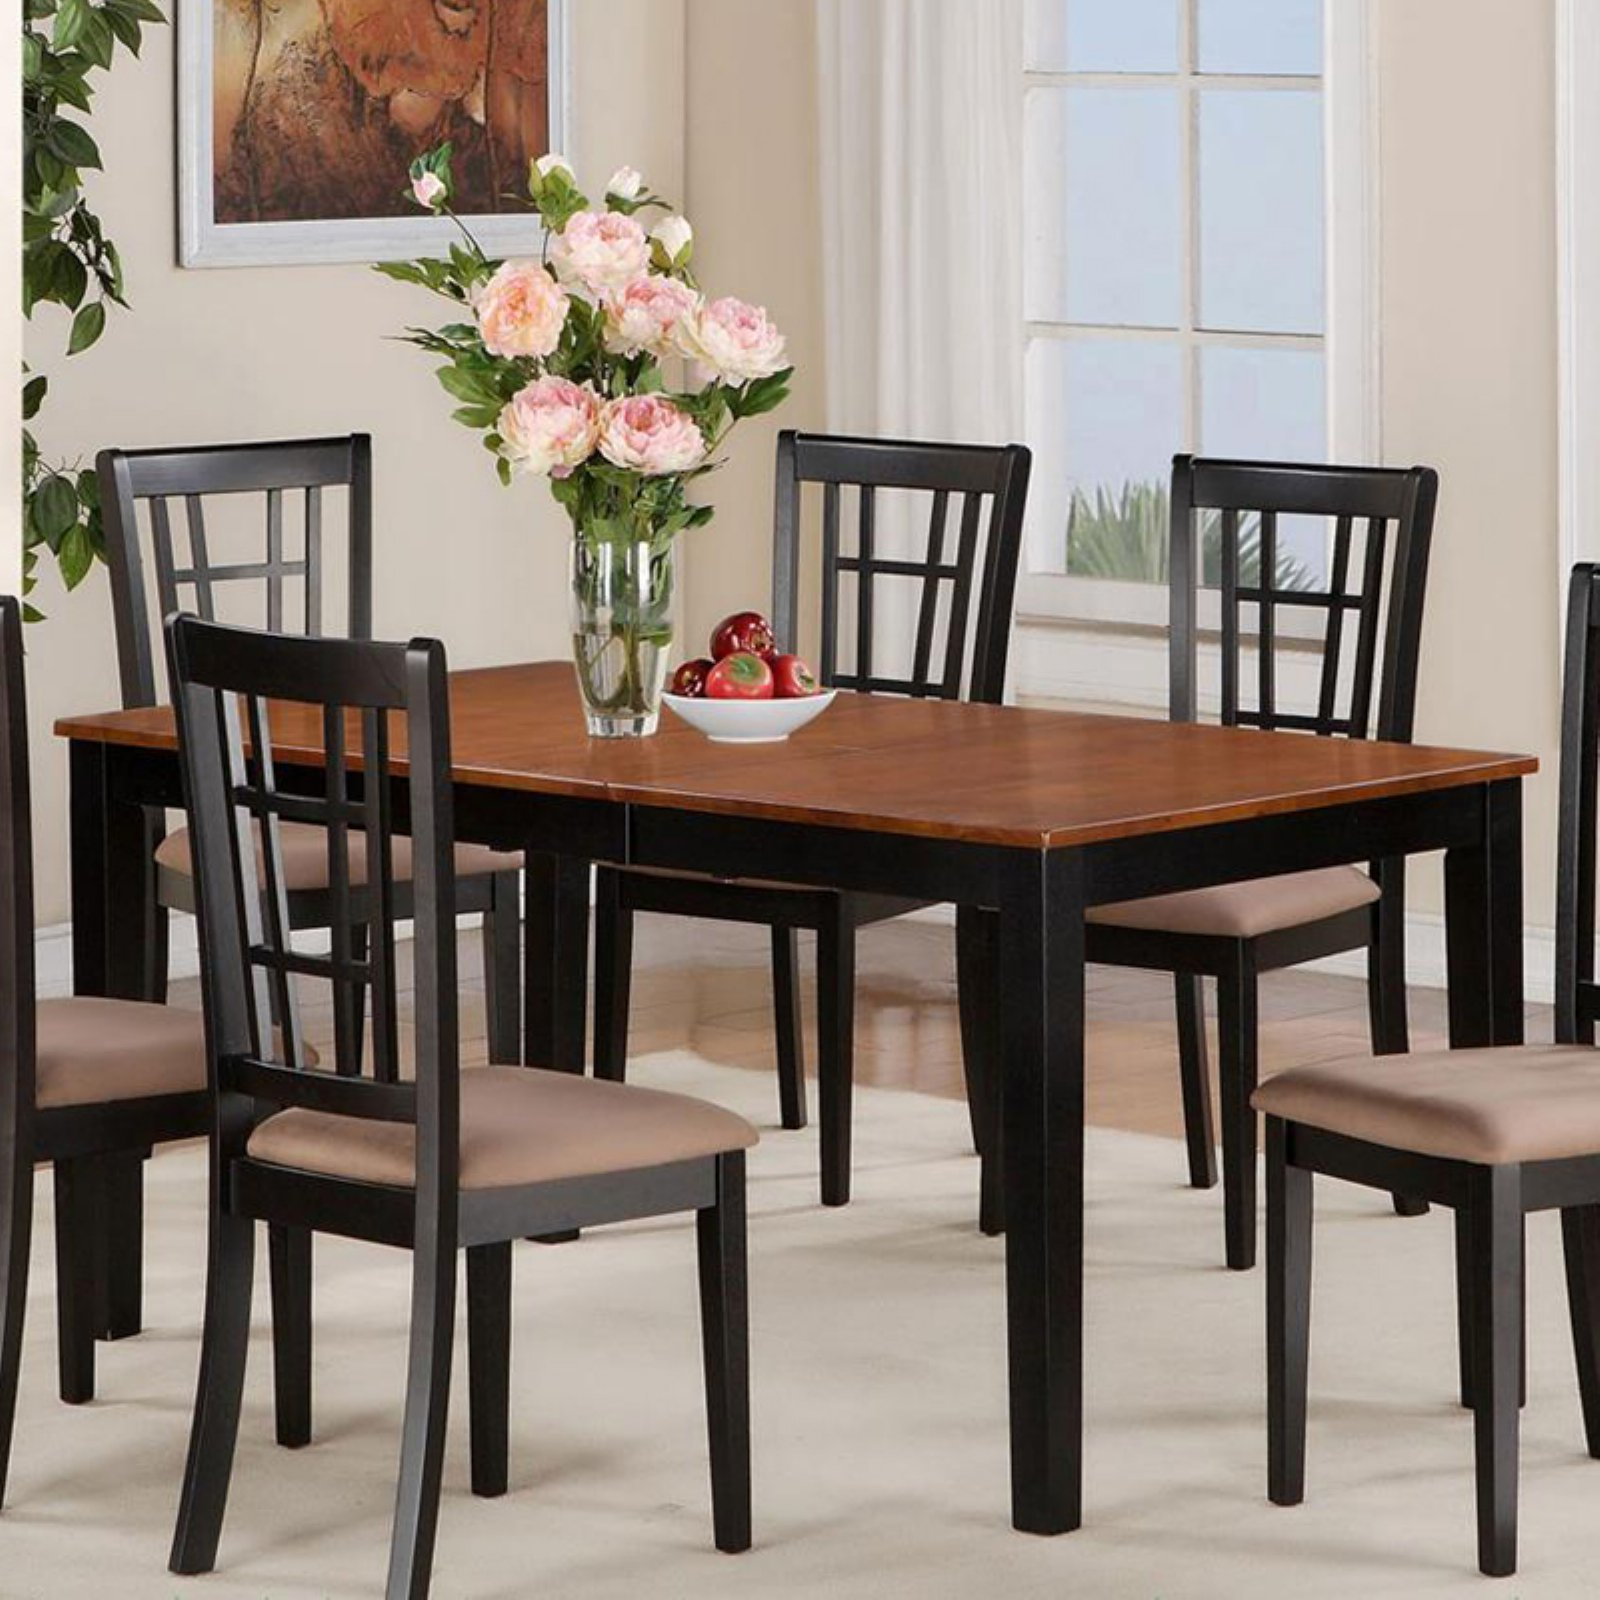 East West Furniture Nicoli 54 66 Inch Rectangular Dining Table With Butterfly Leaf Walmart Com Walmart Com